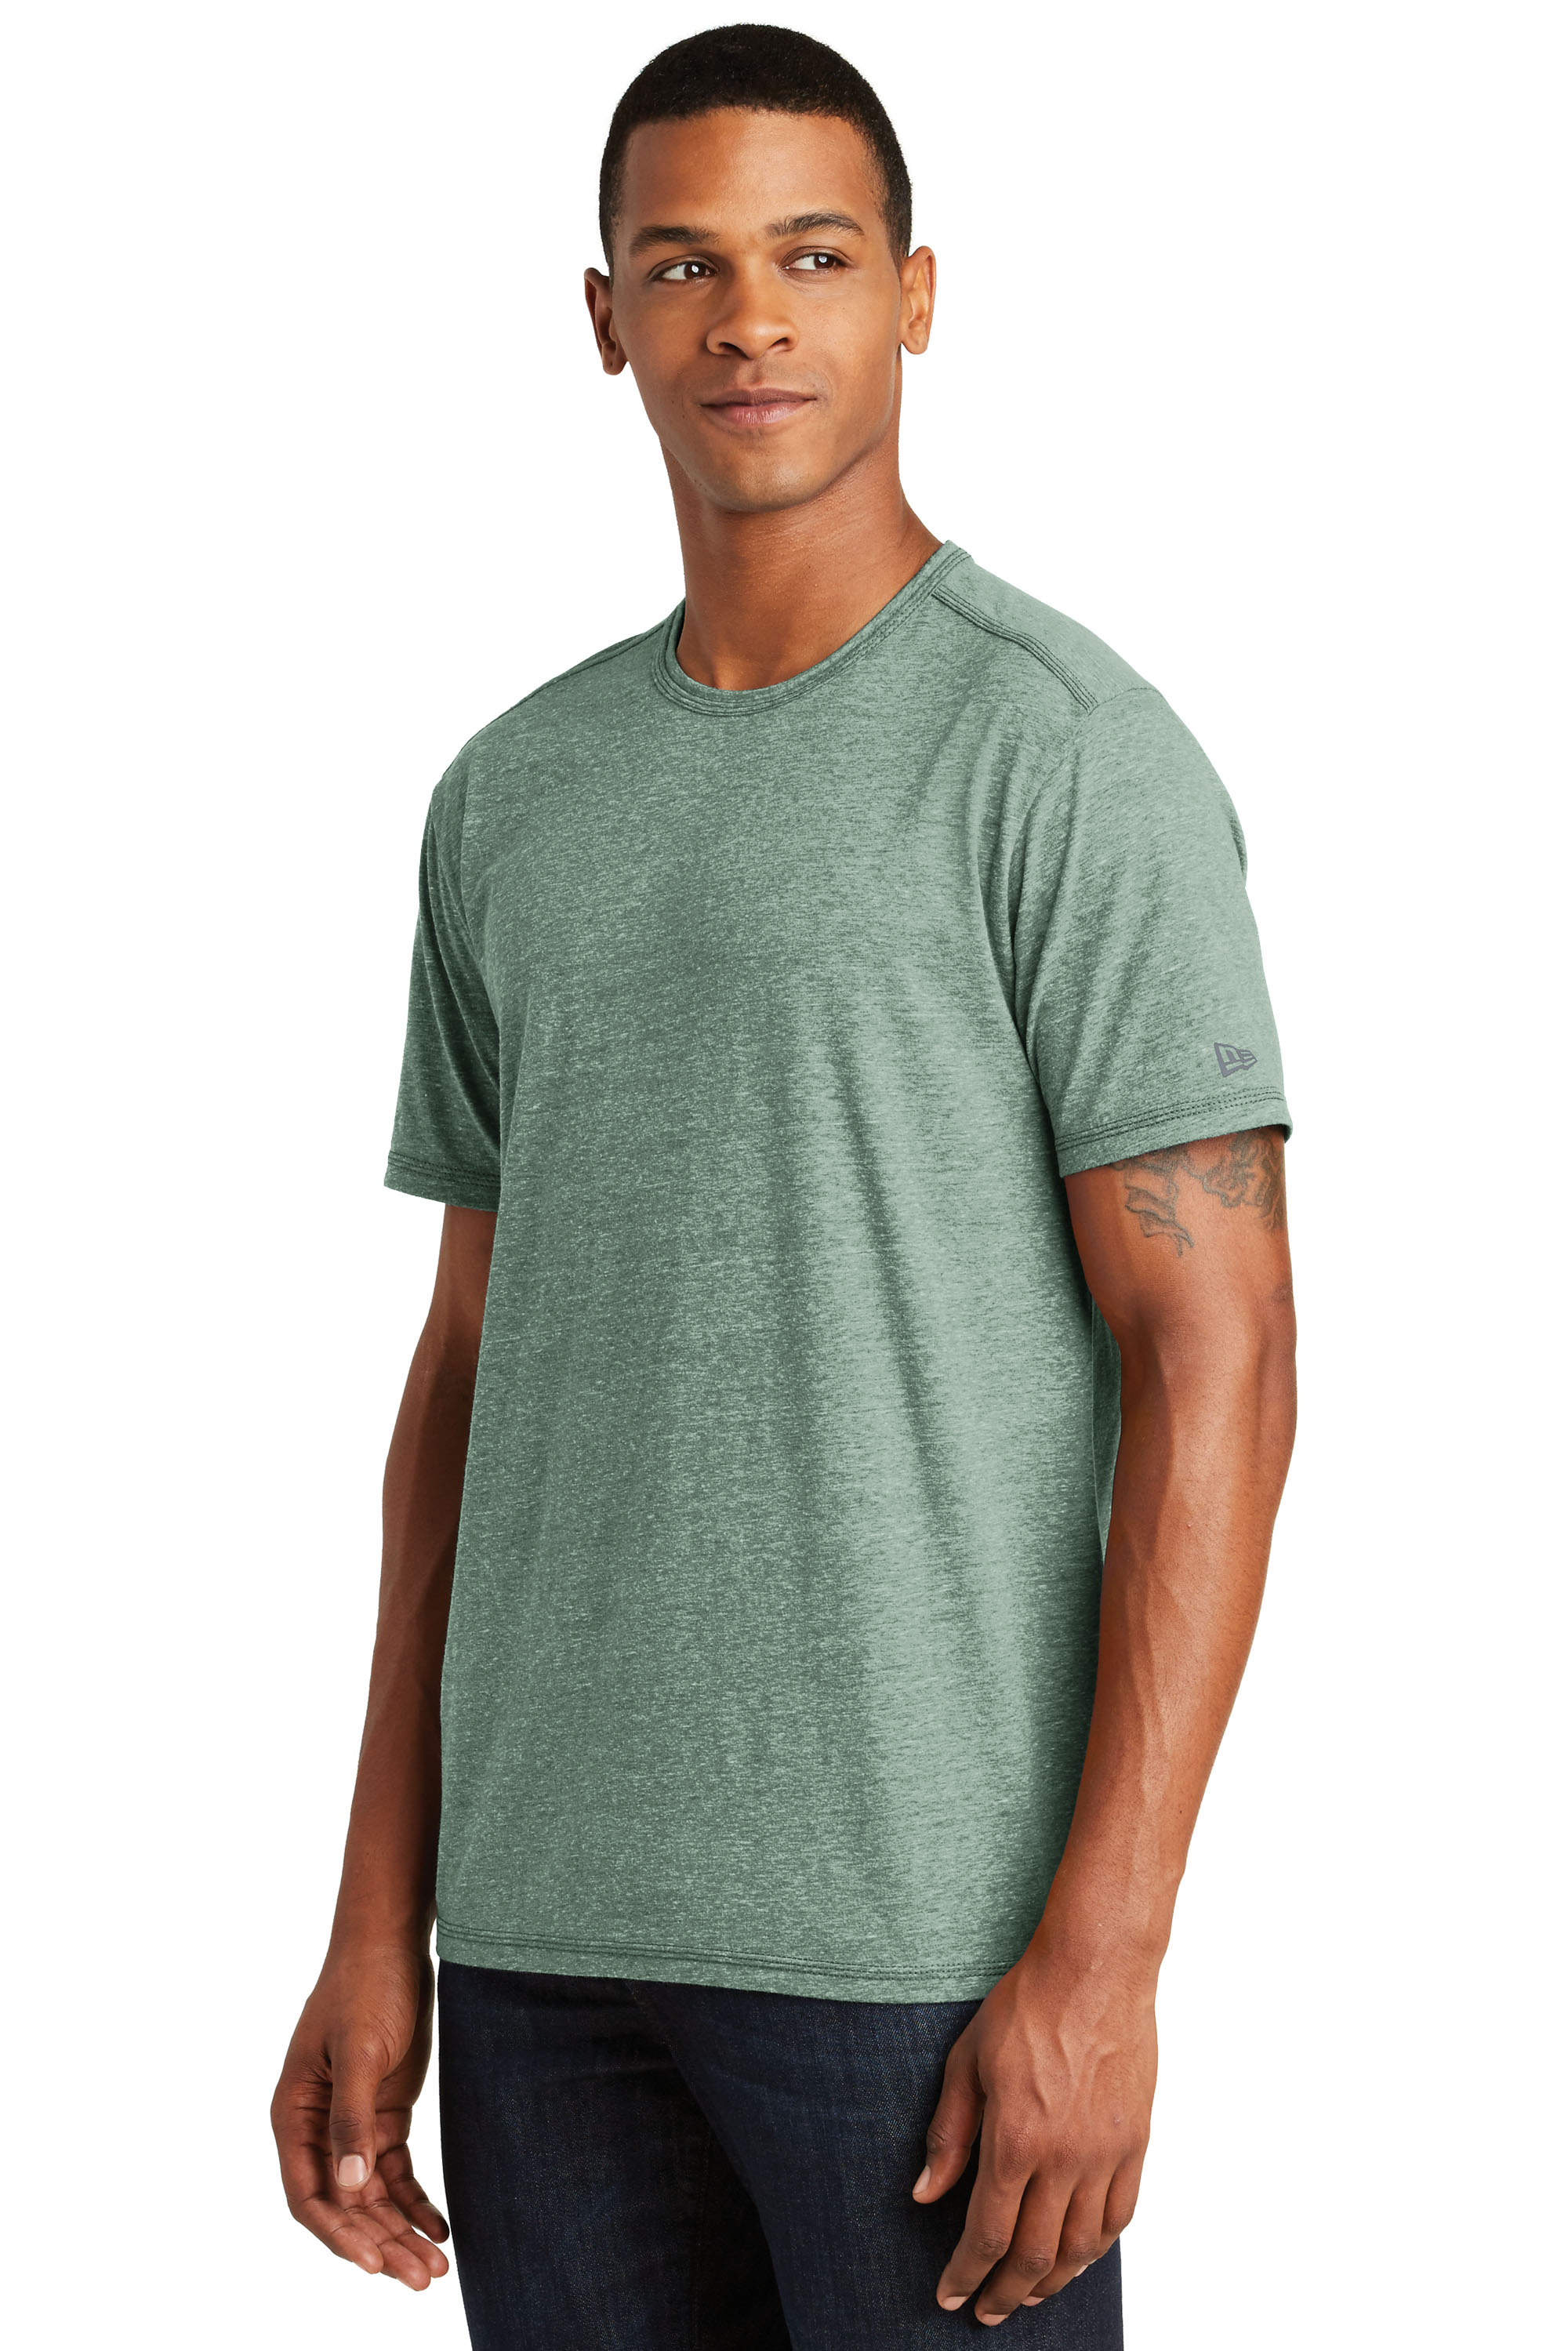 male model in dark green t-shirt